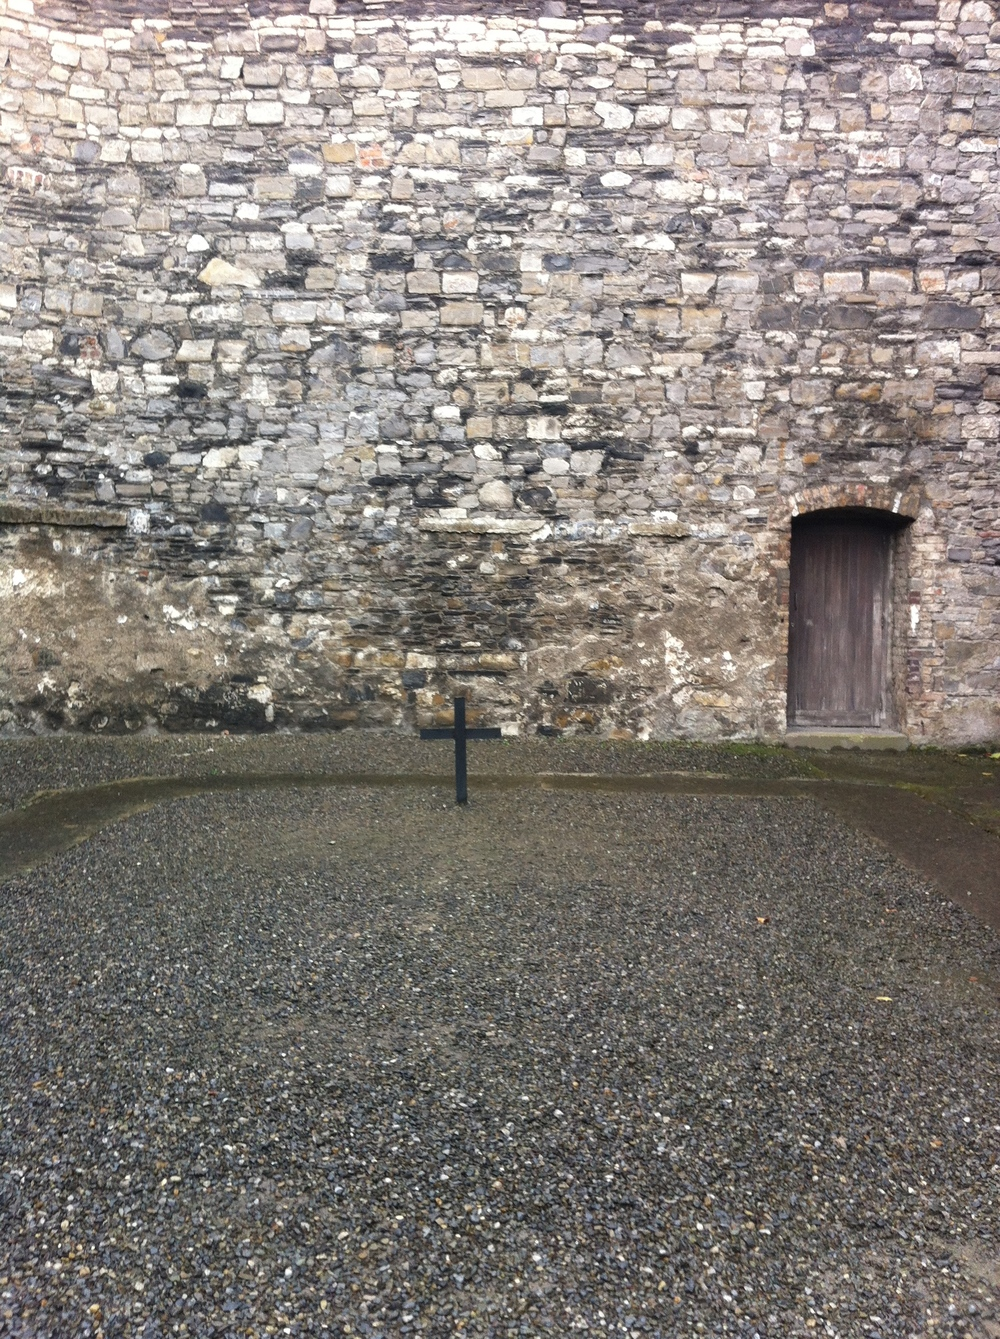 The cross marks the spot where the prisoners stood in the stone breakers yard waiting to be executed by gun fire.